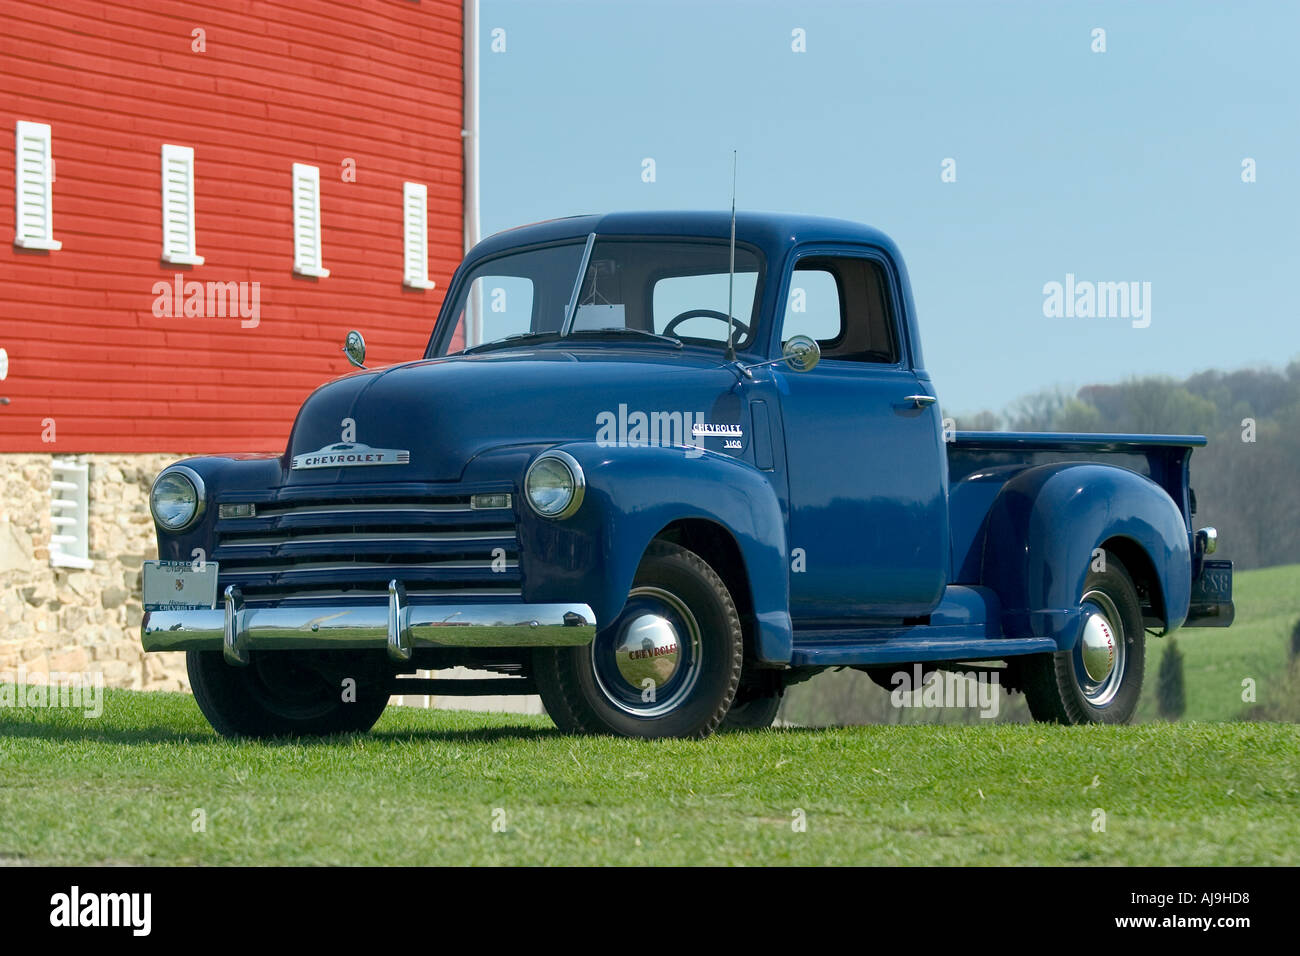 Old Chevy Pickup Truck Stock Photo: 4787671 - Alamy